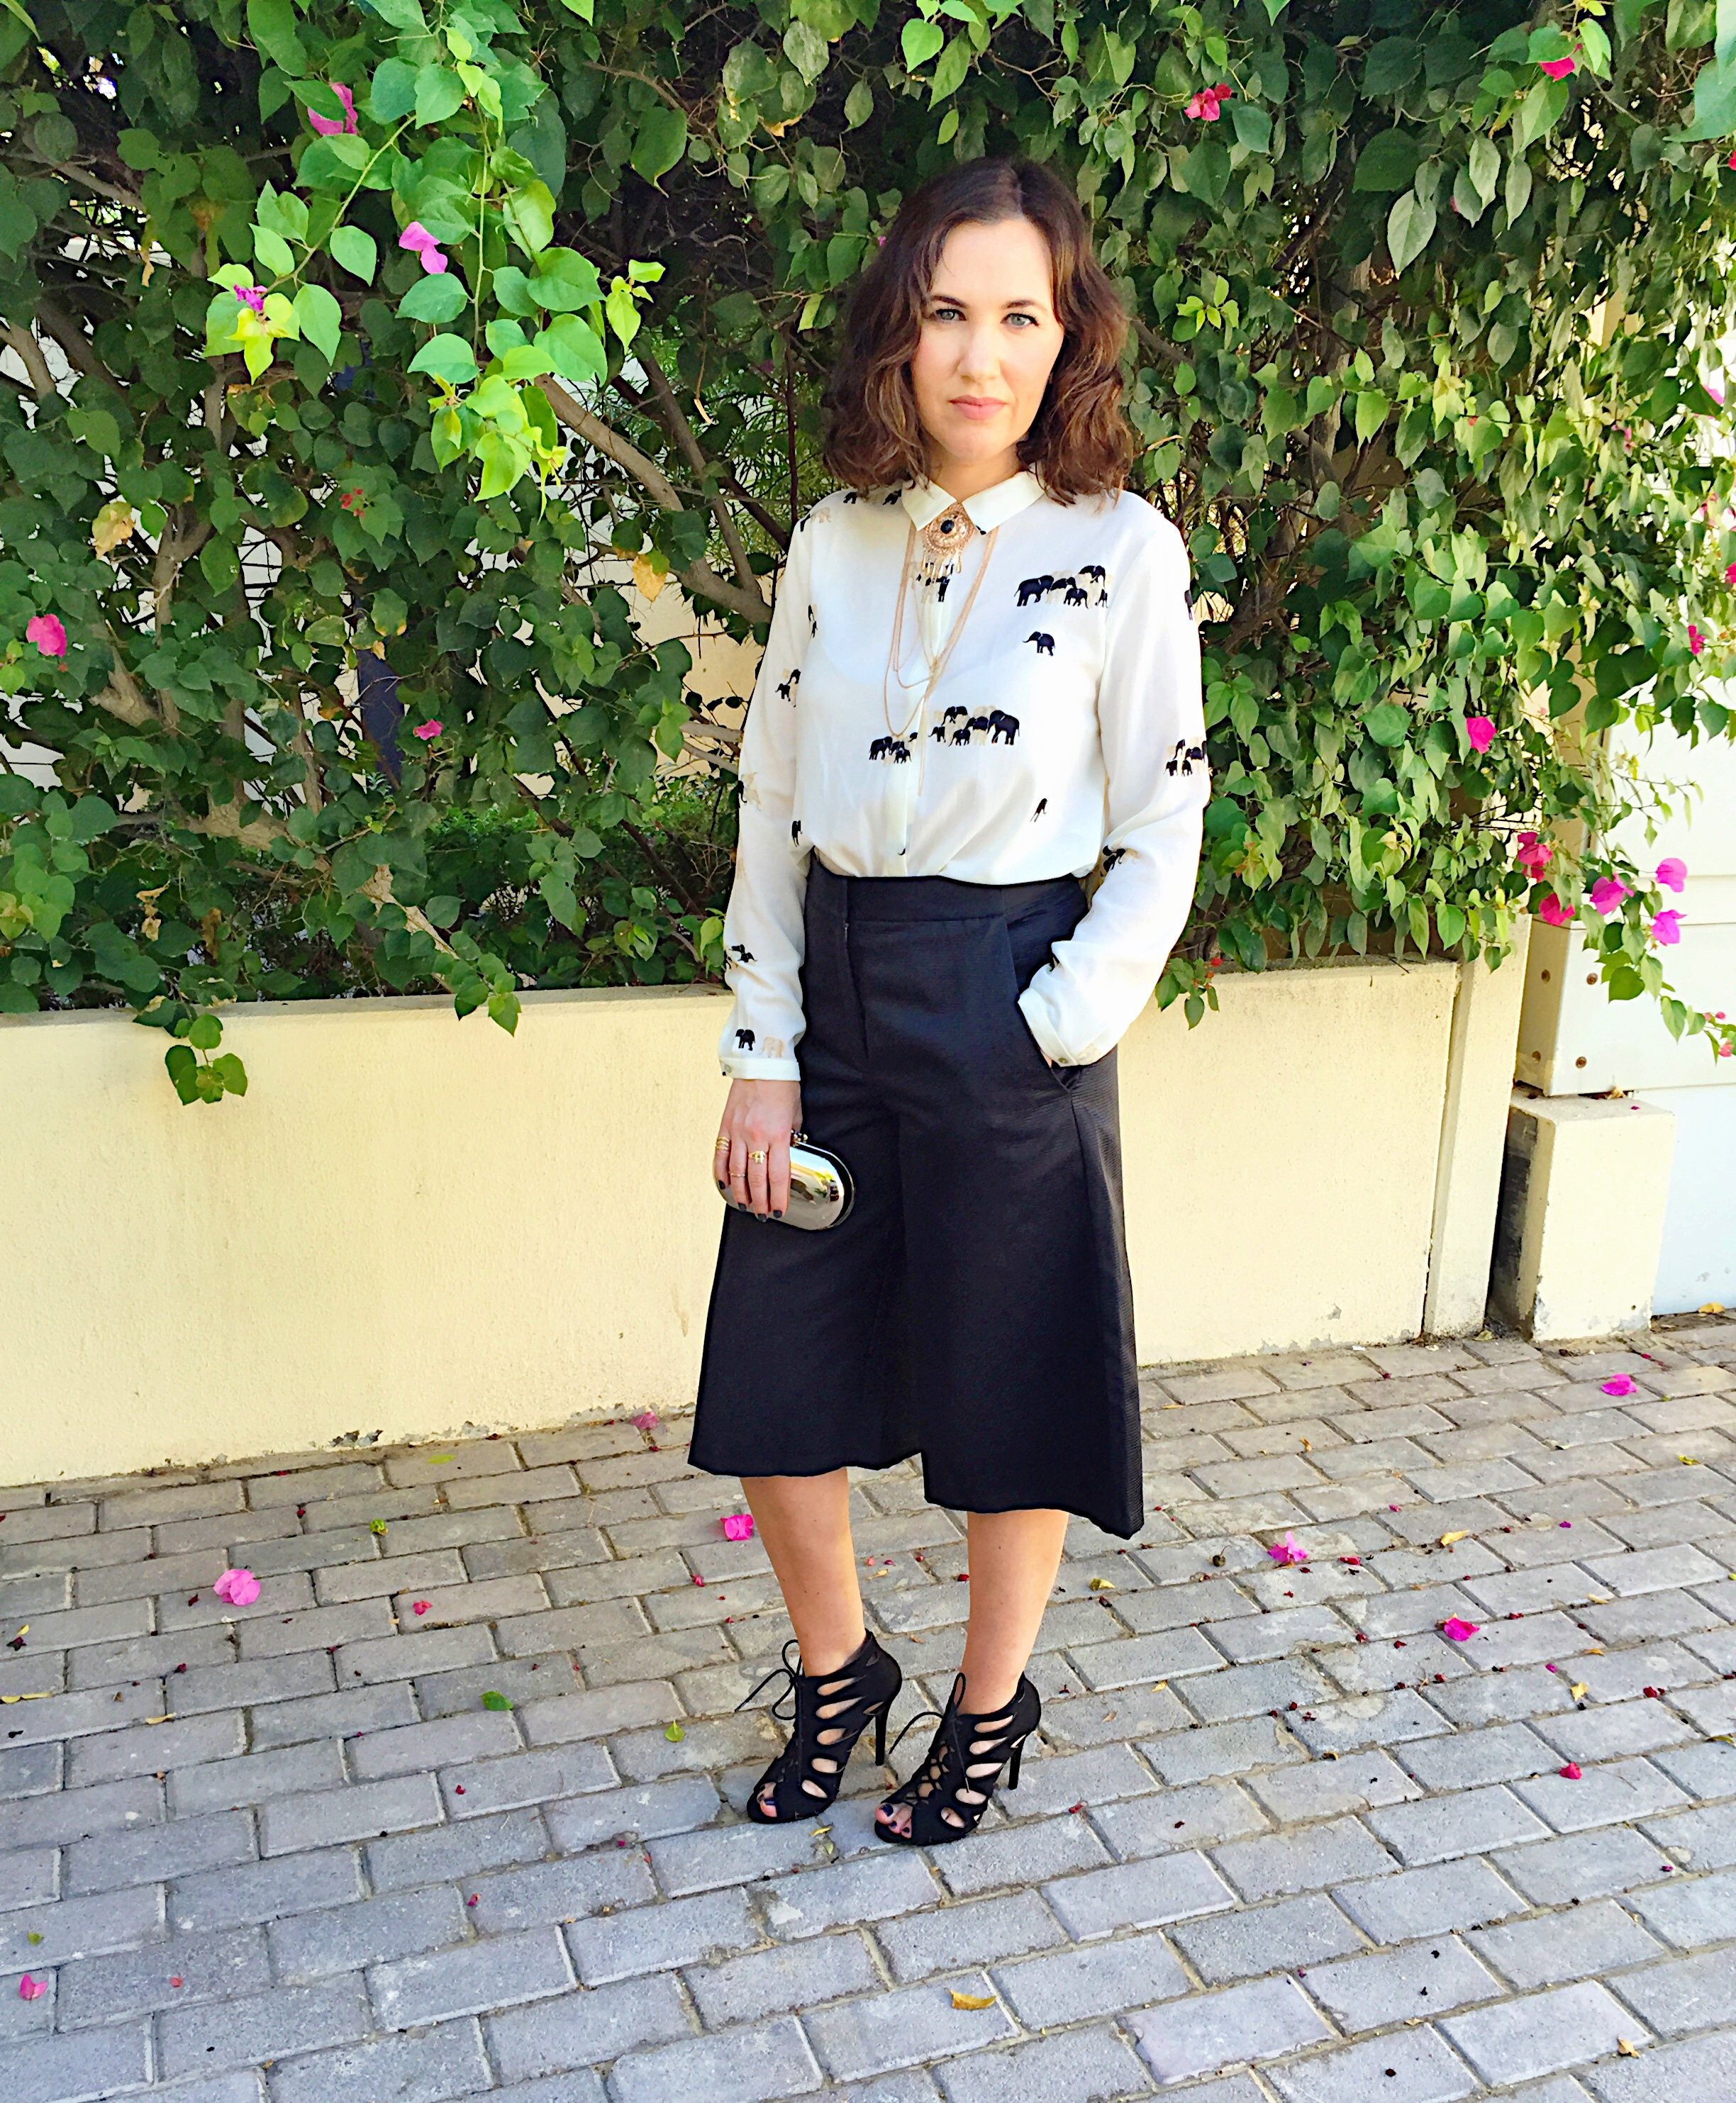 culottes-asos-black-white-monochrome-blog-post-blogger-gingham-and-sparkle-trend-fashion-style-dubai-ireland-irish-shoe-boots-fringe-stripes-bell-sleeves-zara-h&m-adidas-trainers-runners-3-styles-grey-jumper-elephant-print-blouse-shoe-boots-jacket-quay-australia-sunglasses-office-look-nighttime-bar-going-outculottes-asos-black-white-monochrome-blog-post-blogger-gingham-and-sparkle-trend-fashion-style-dubai-ireland-irish-shoe-boots-fringe-stripes-bell-sleeves-zara-h&m-adidas-trainers-runners-3-styles-grey-jumper-elephant-print-blouse-shoe-boots-jacket-quay-australia-sunglasses-office-look-nighttime-bar-going-out